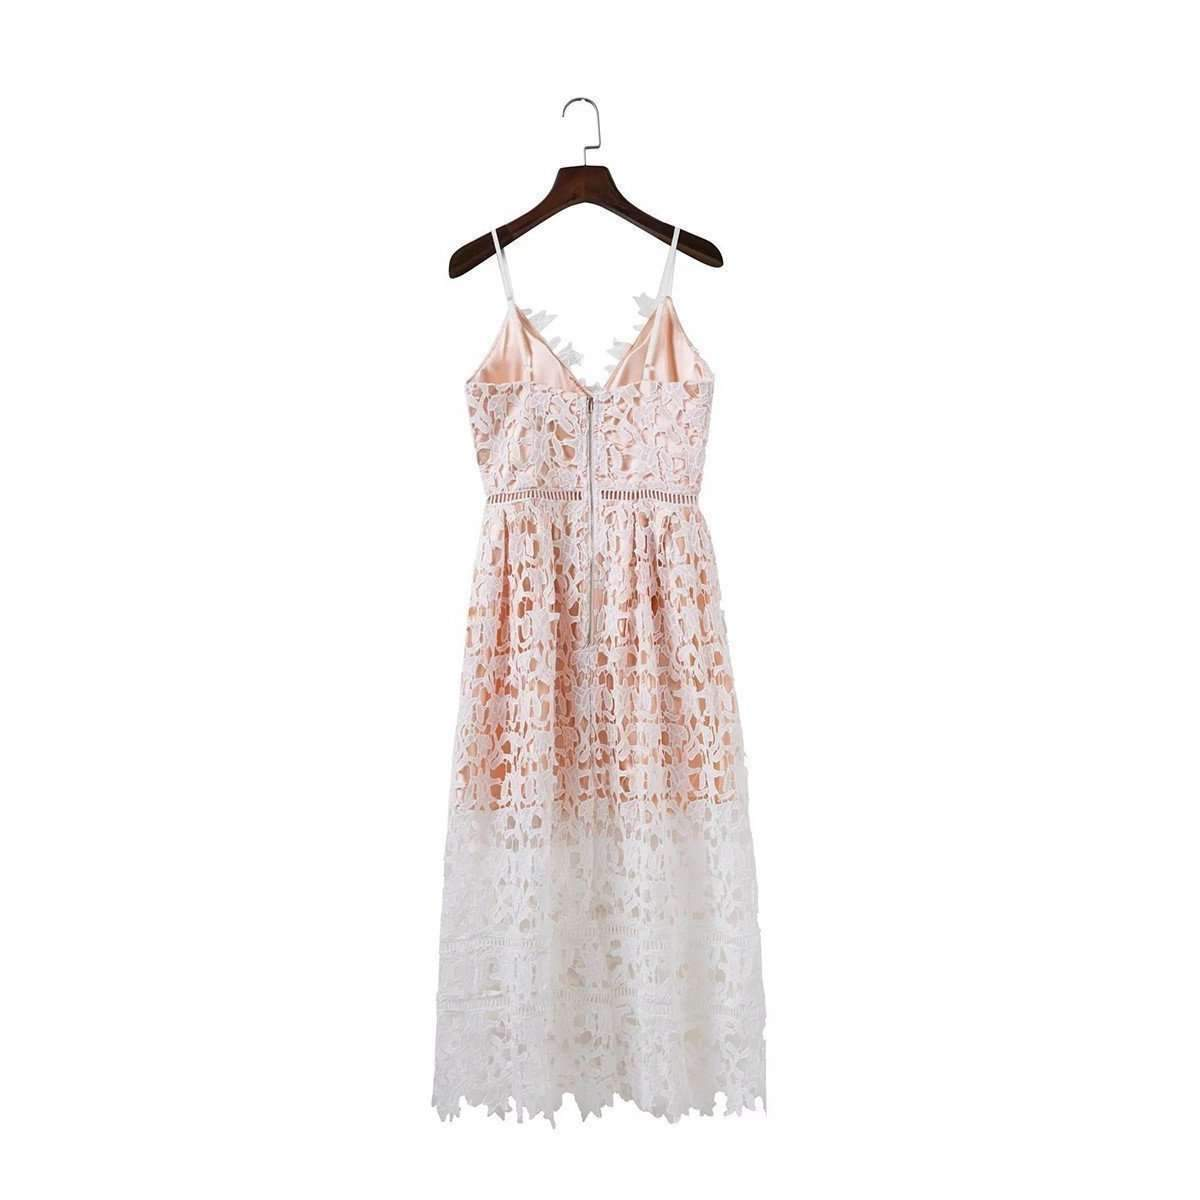 Lace Overlay Spaghetti Strap Women Summer Party Dress